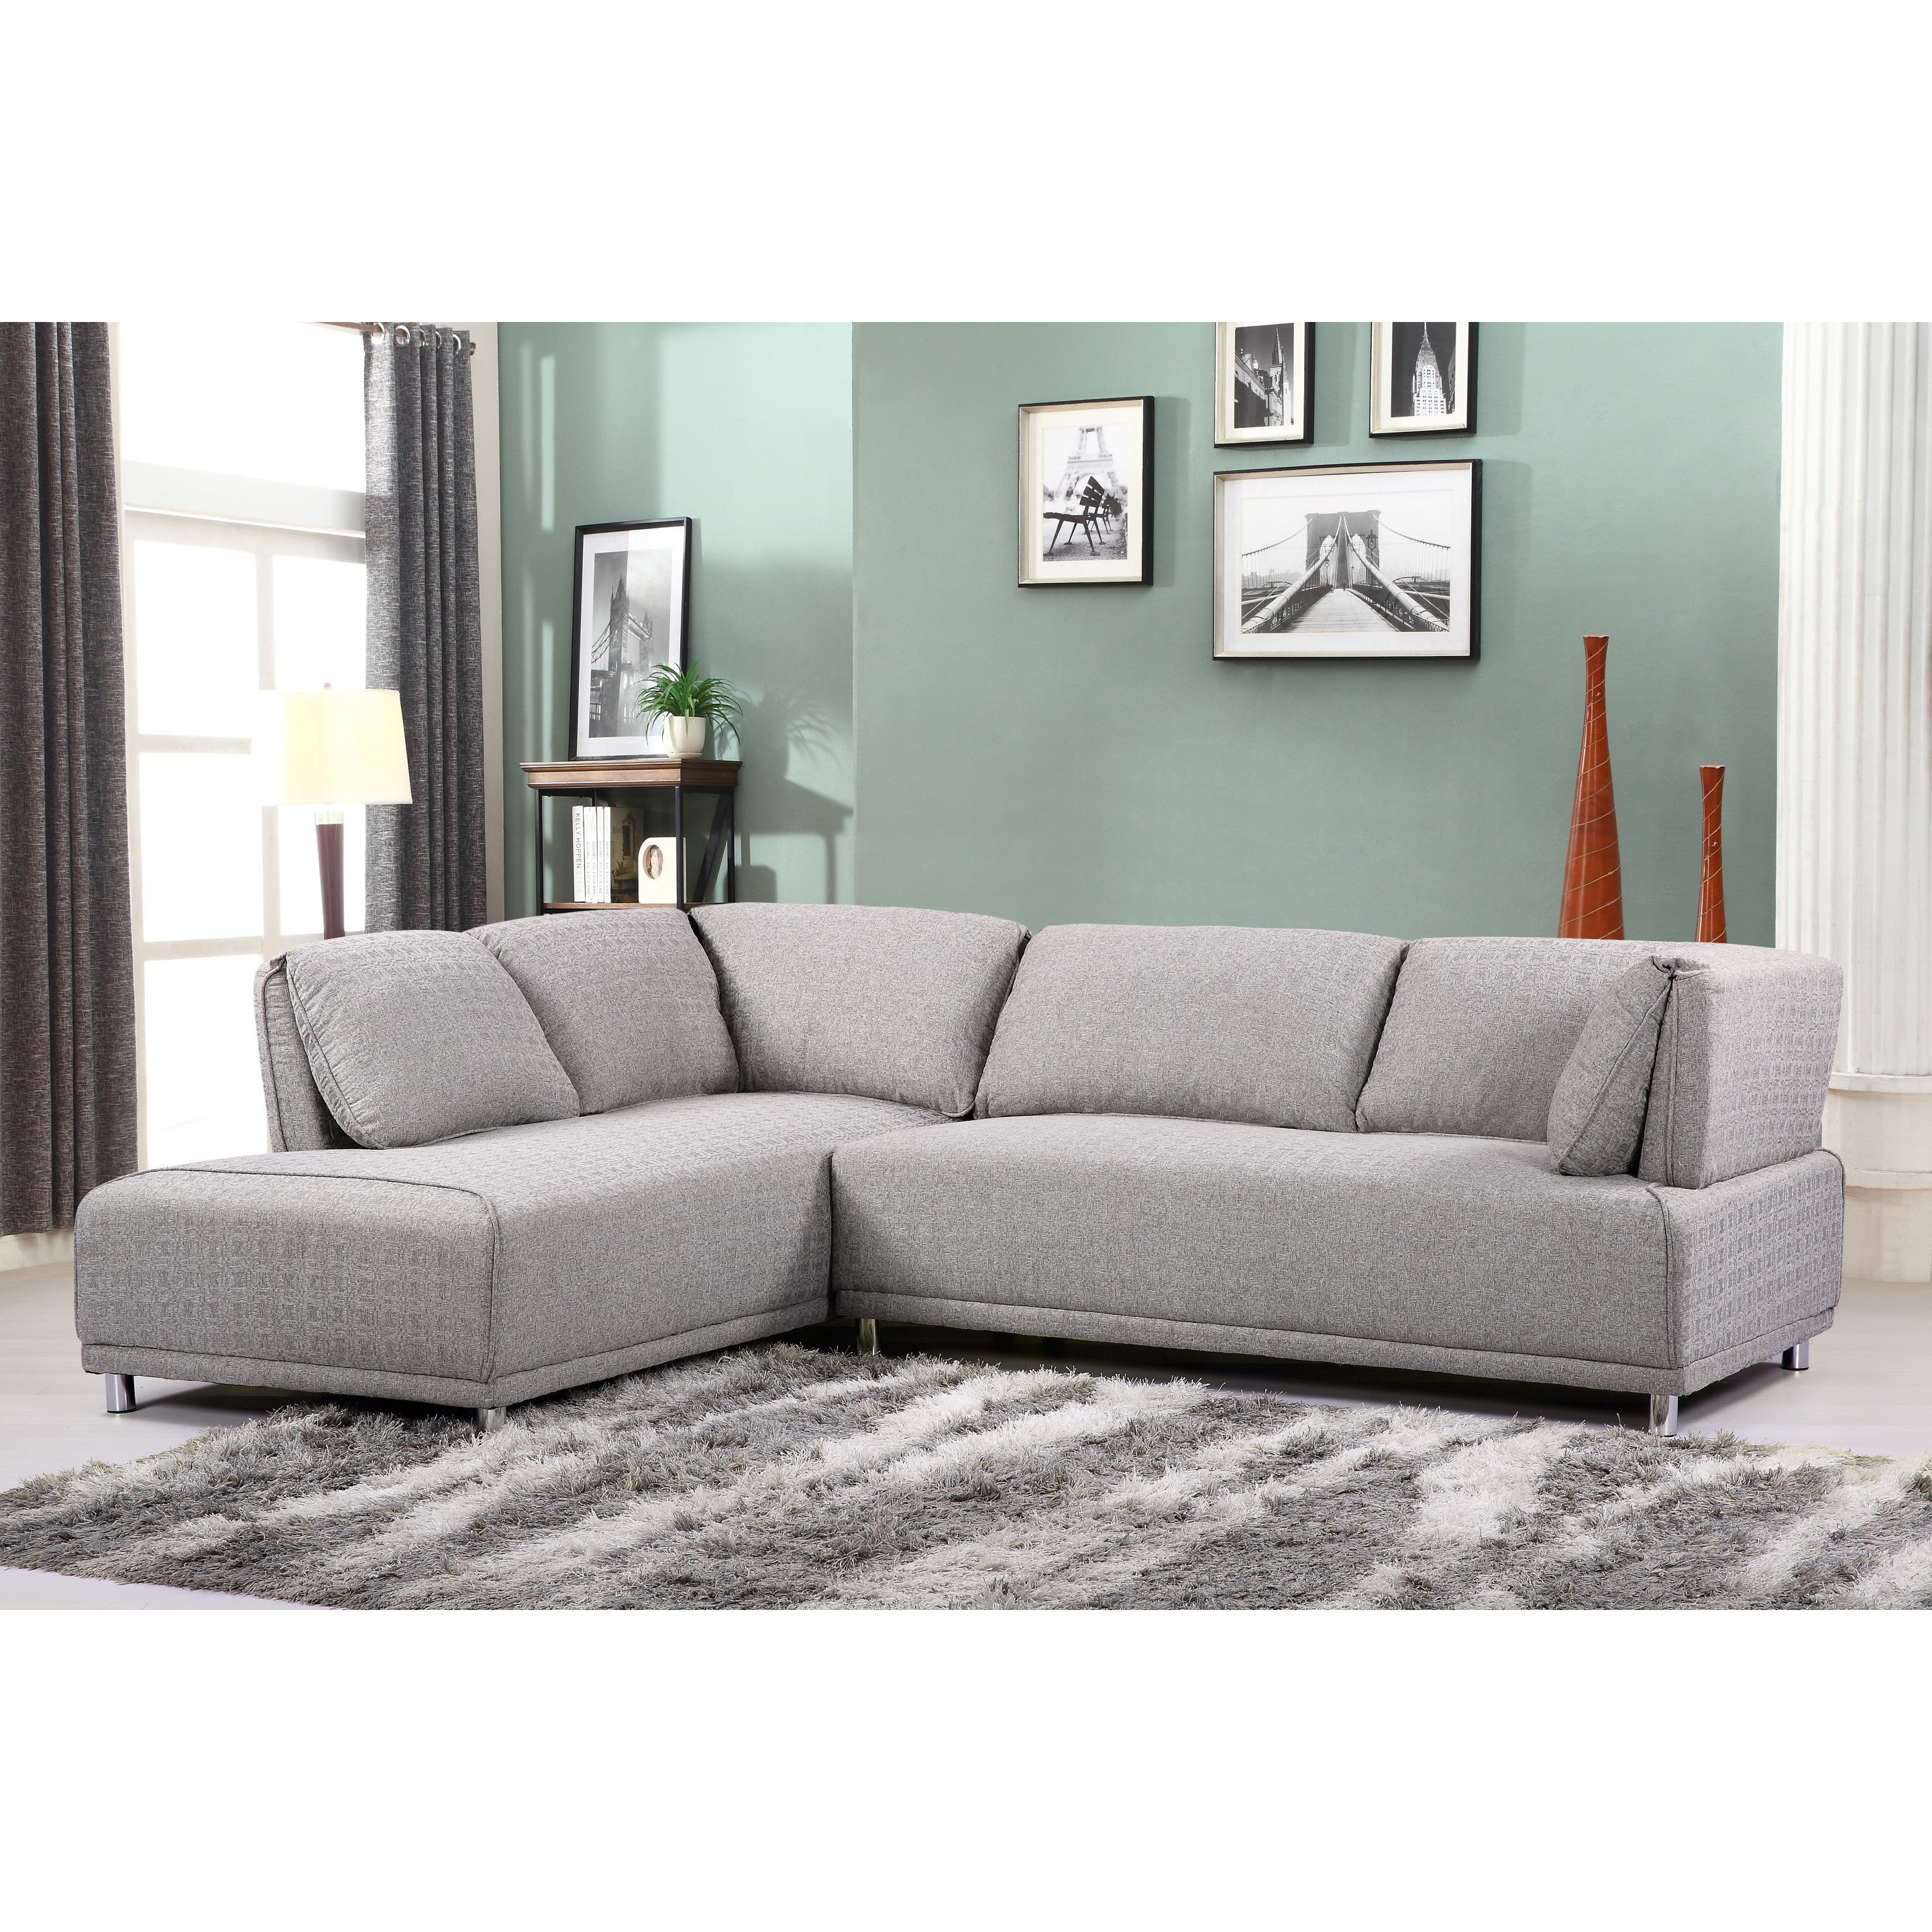 fabric sectional coaster steal sofa stonenesse a grey furniture chaise